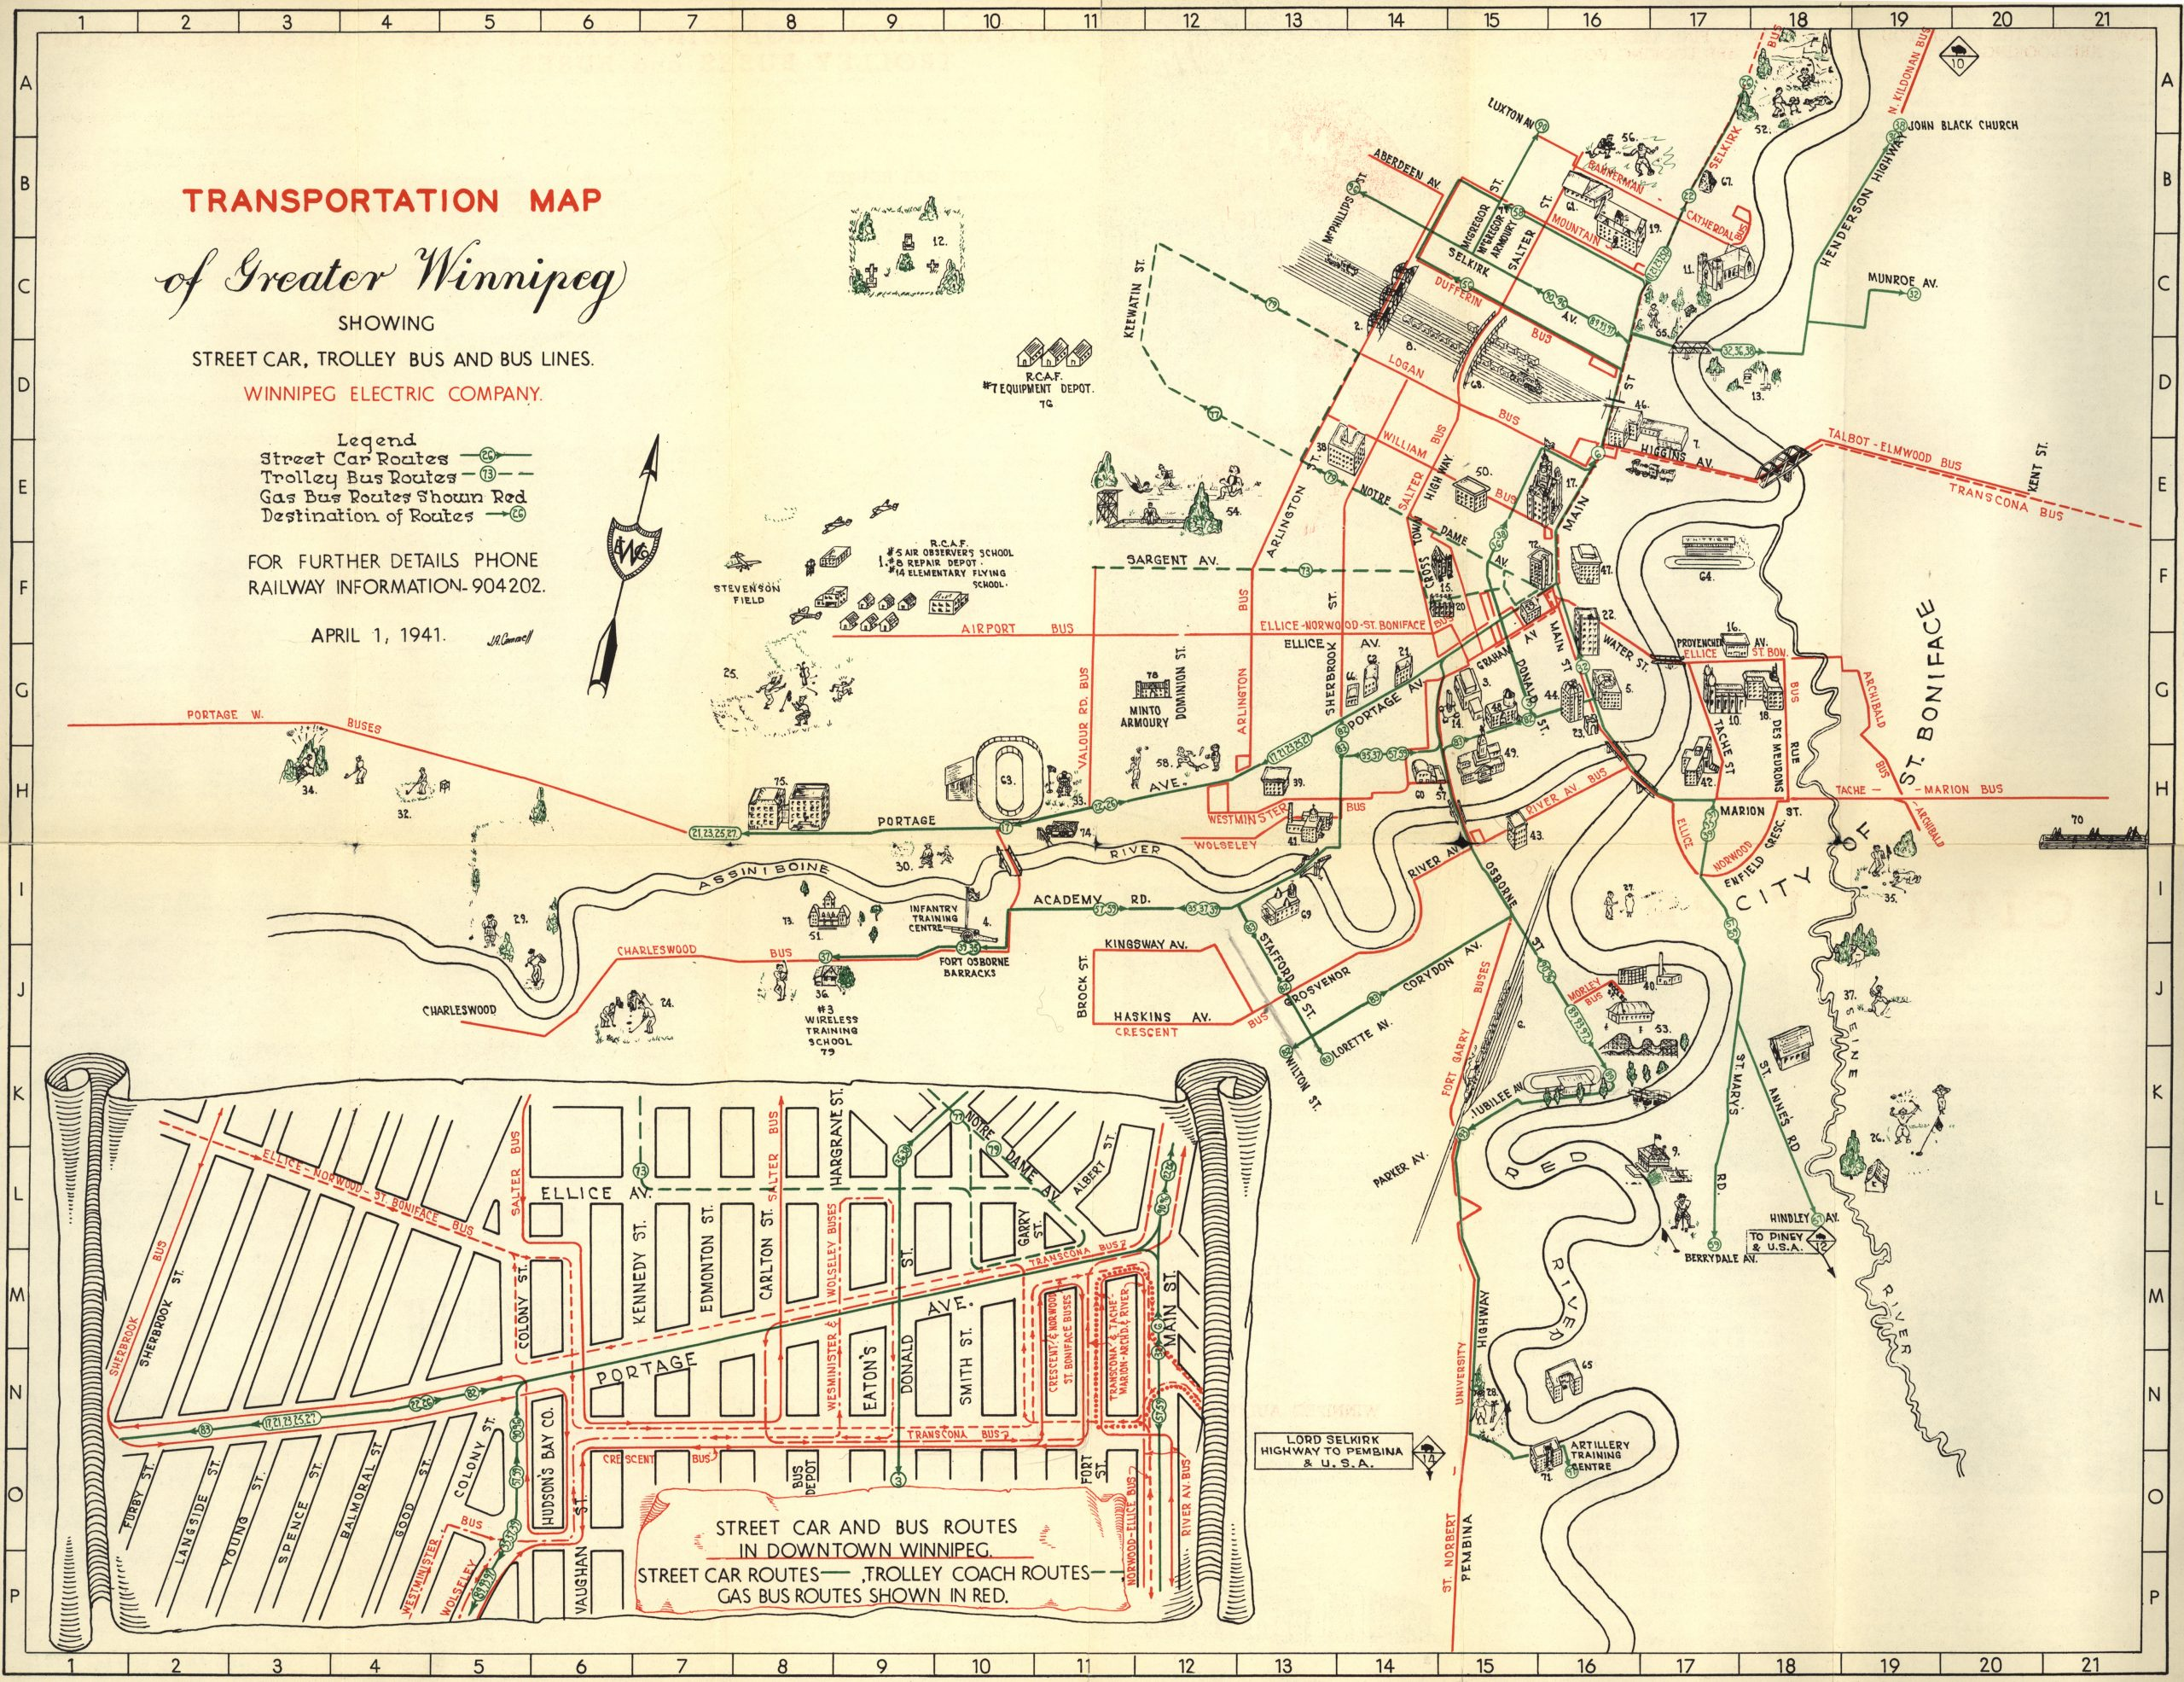 Transportation Map of Greater Winnipeg Showing Street Car Trolley Bus and Bus Lines 1941